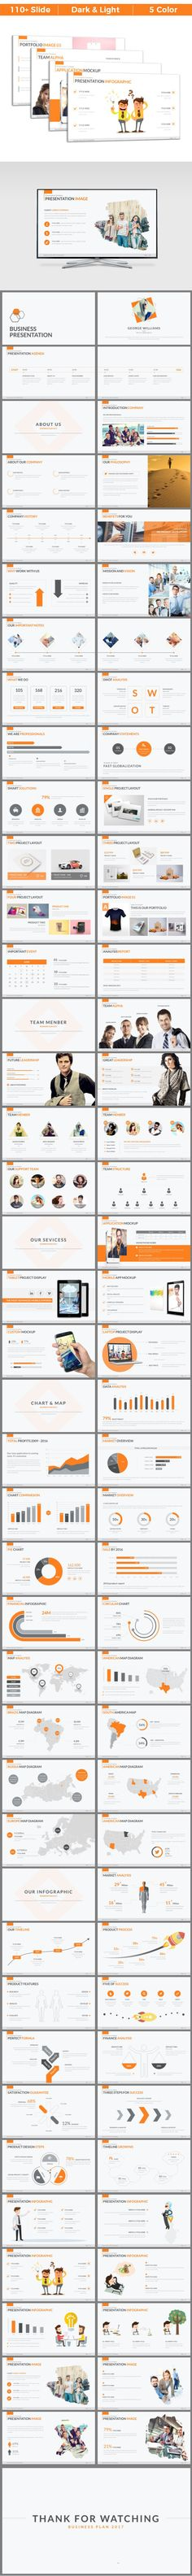 Business Plan 2017 Presentation Templates - PowerPoint Templates Presentation Templates